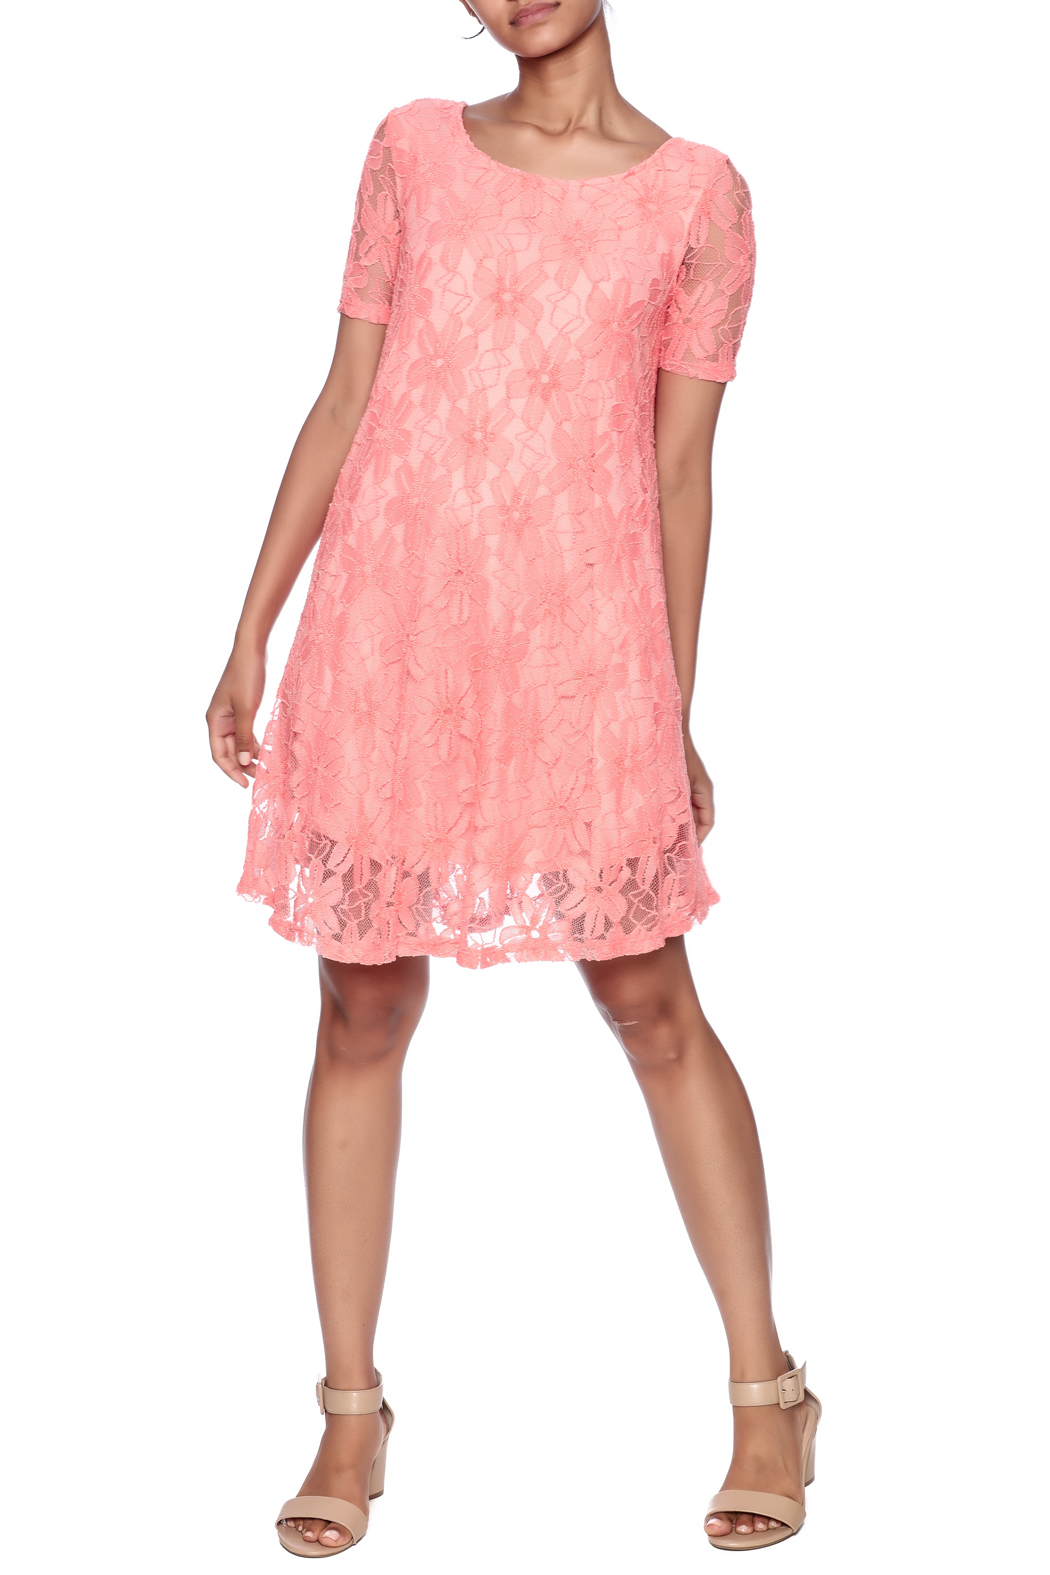 Lollipop Star Coral Lace Dress - Front Full Image